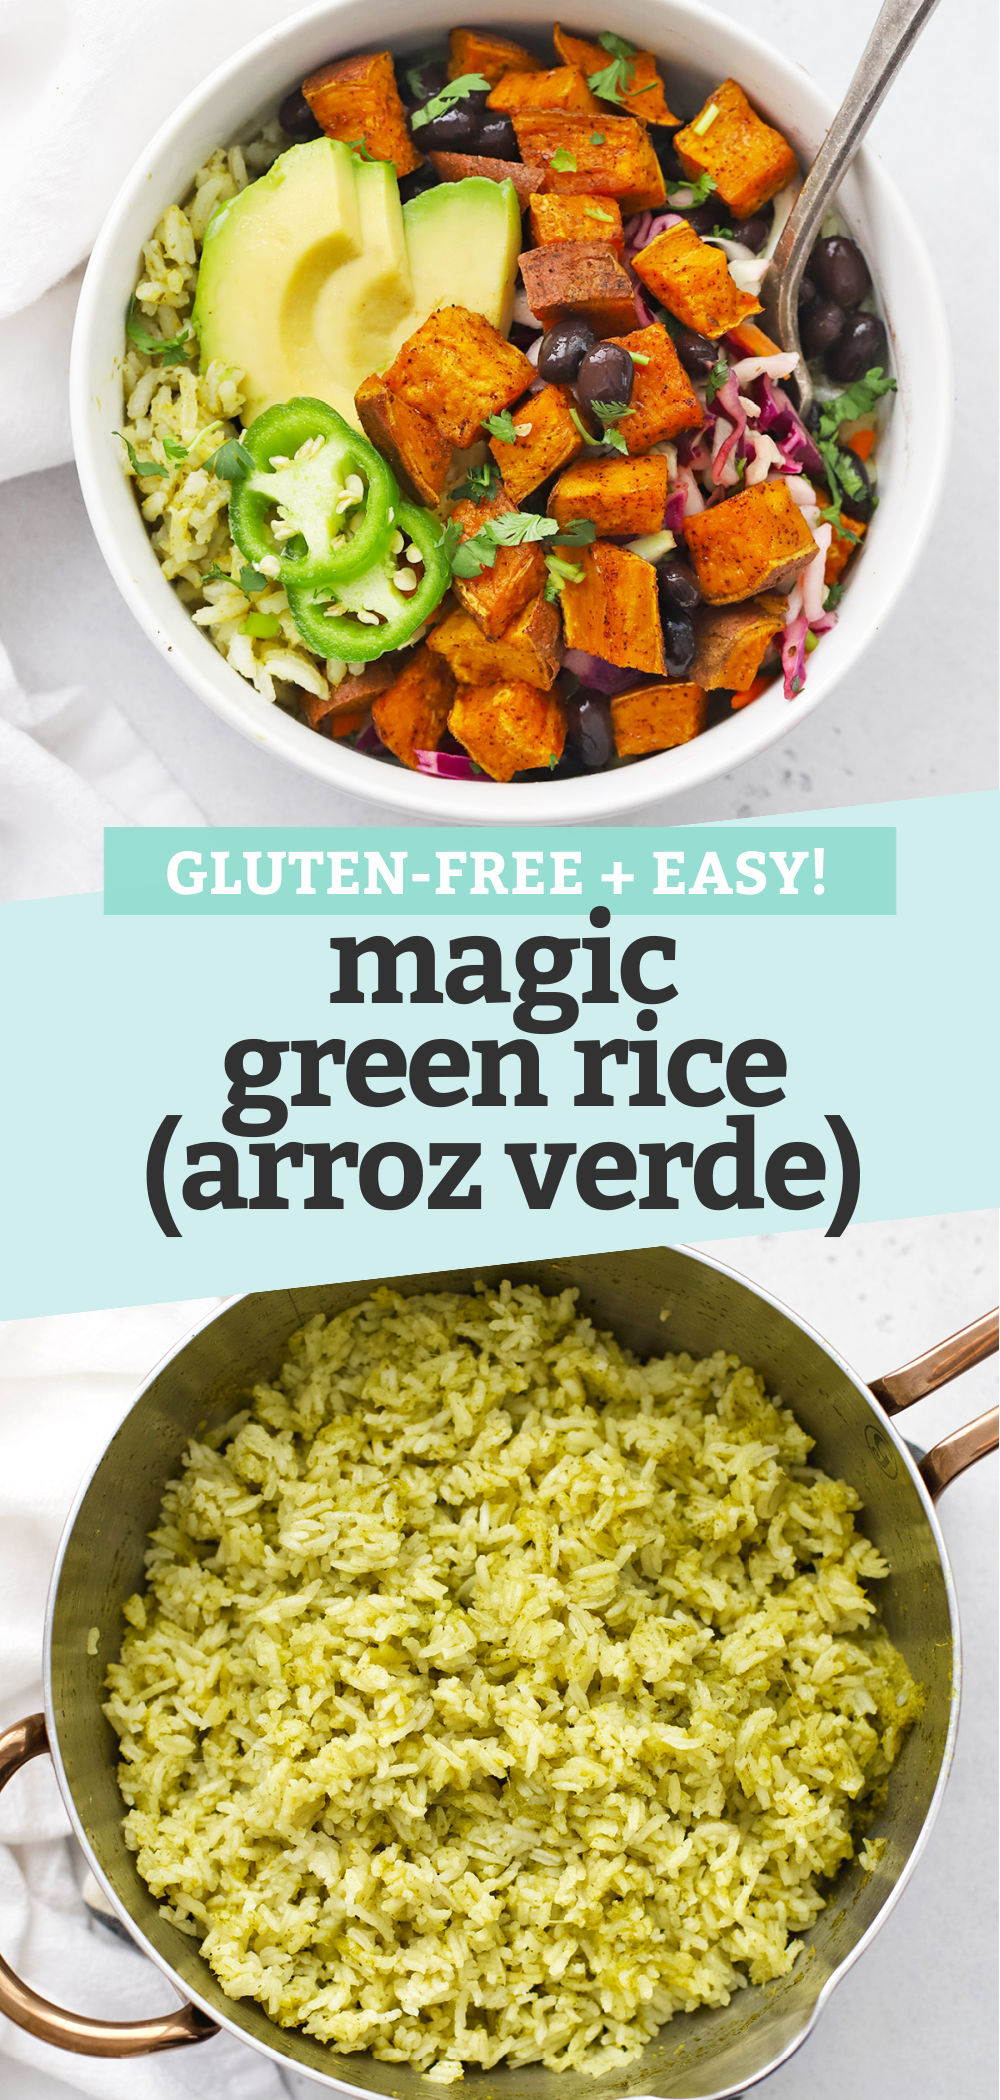 """Collage of images of Mexican Green Rice (Arroz Verde) with a text overlay that reads """"Gluten-Free + Easy Magic Green Rice (Arroz Verde)."""""""